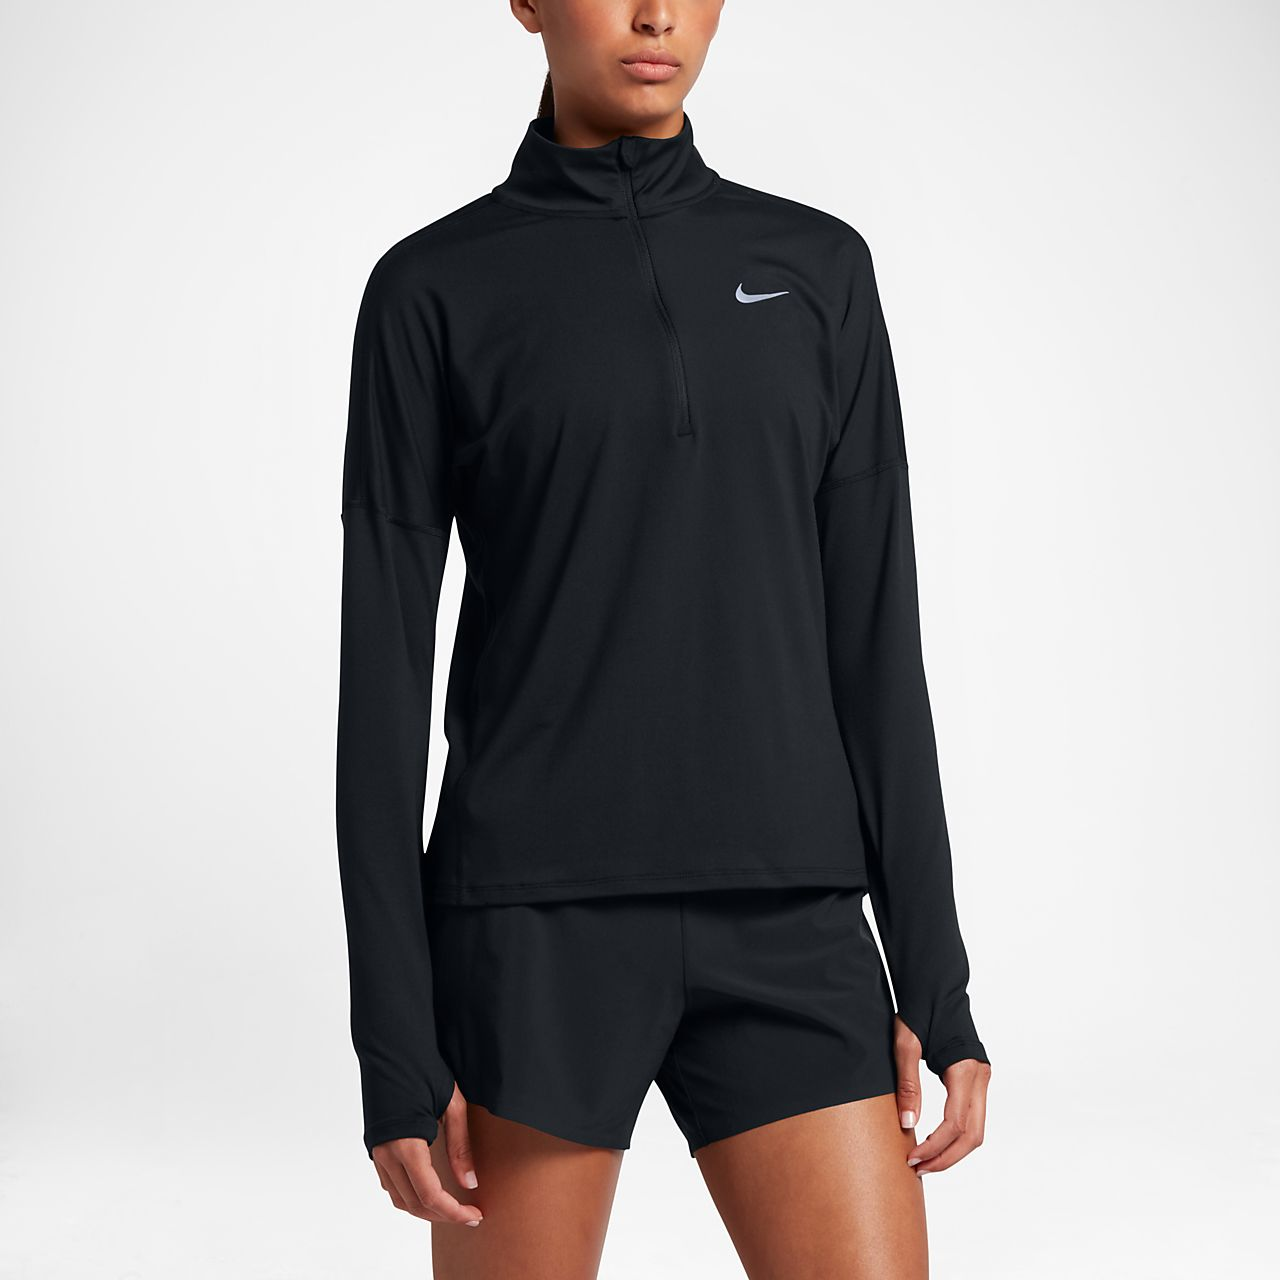 481c5c0cdc4d Nike Dri-FIT Women s Long-Sleeve Running Half-Zip Top. Nike.com GB